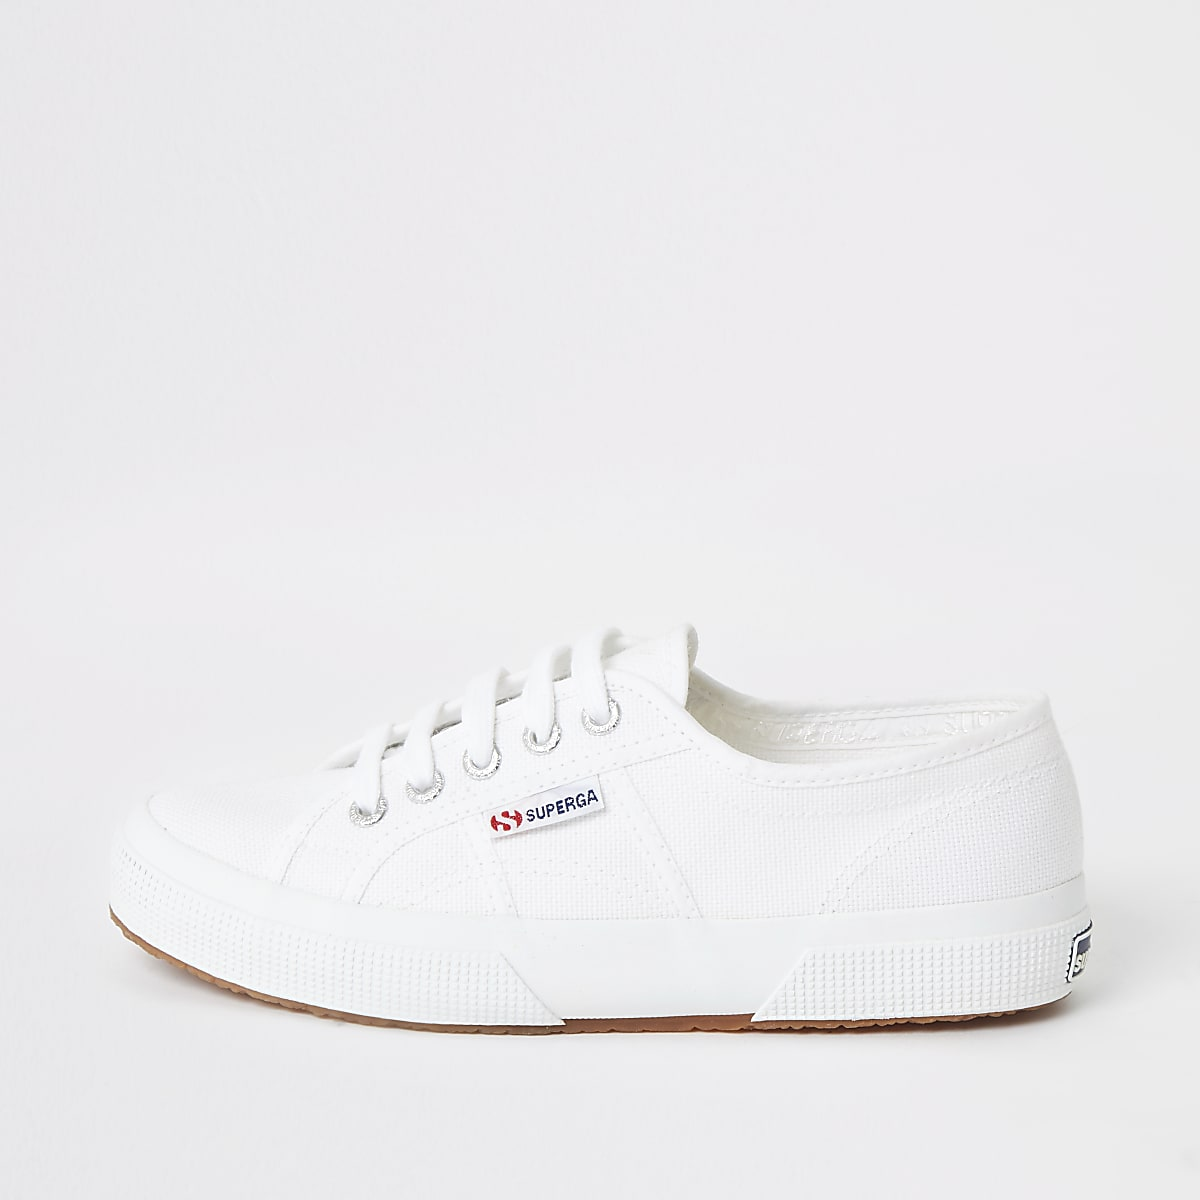 Superga white classic runner sneakers